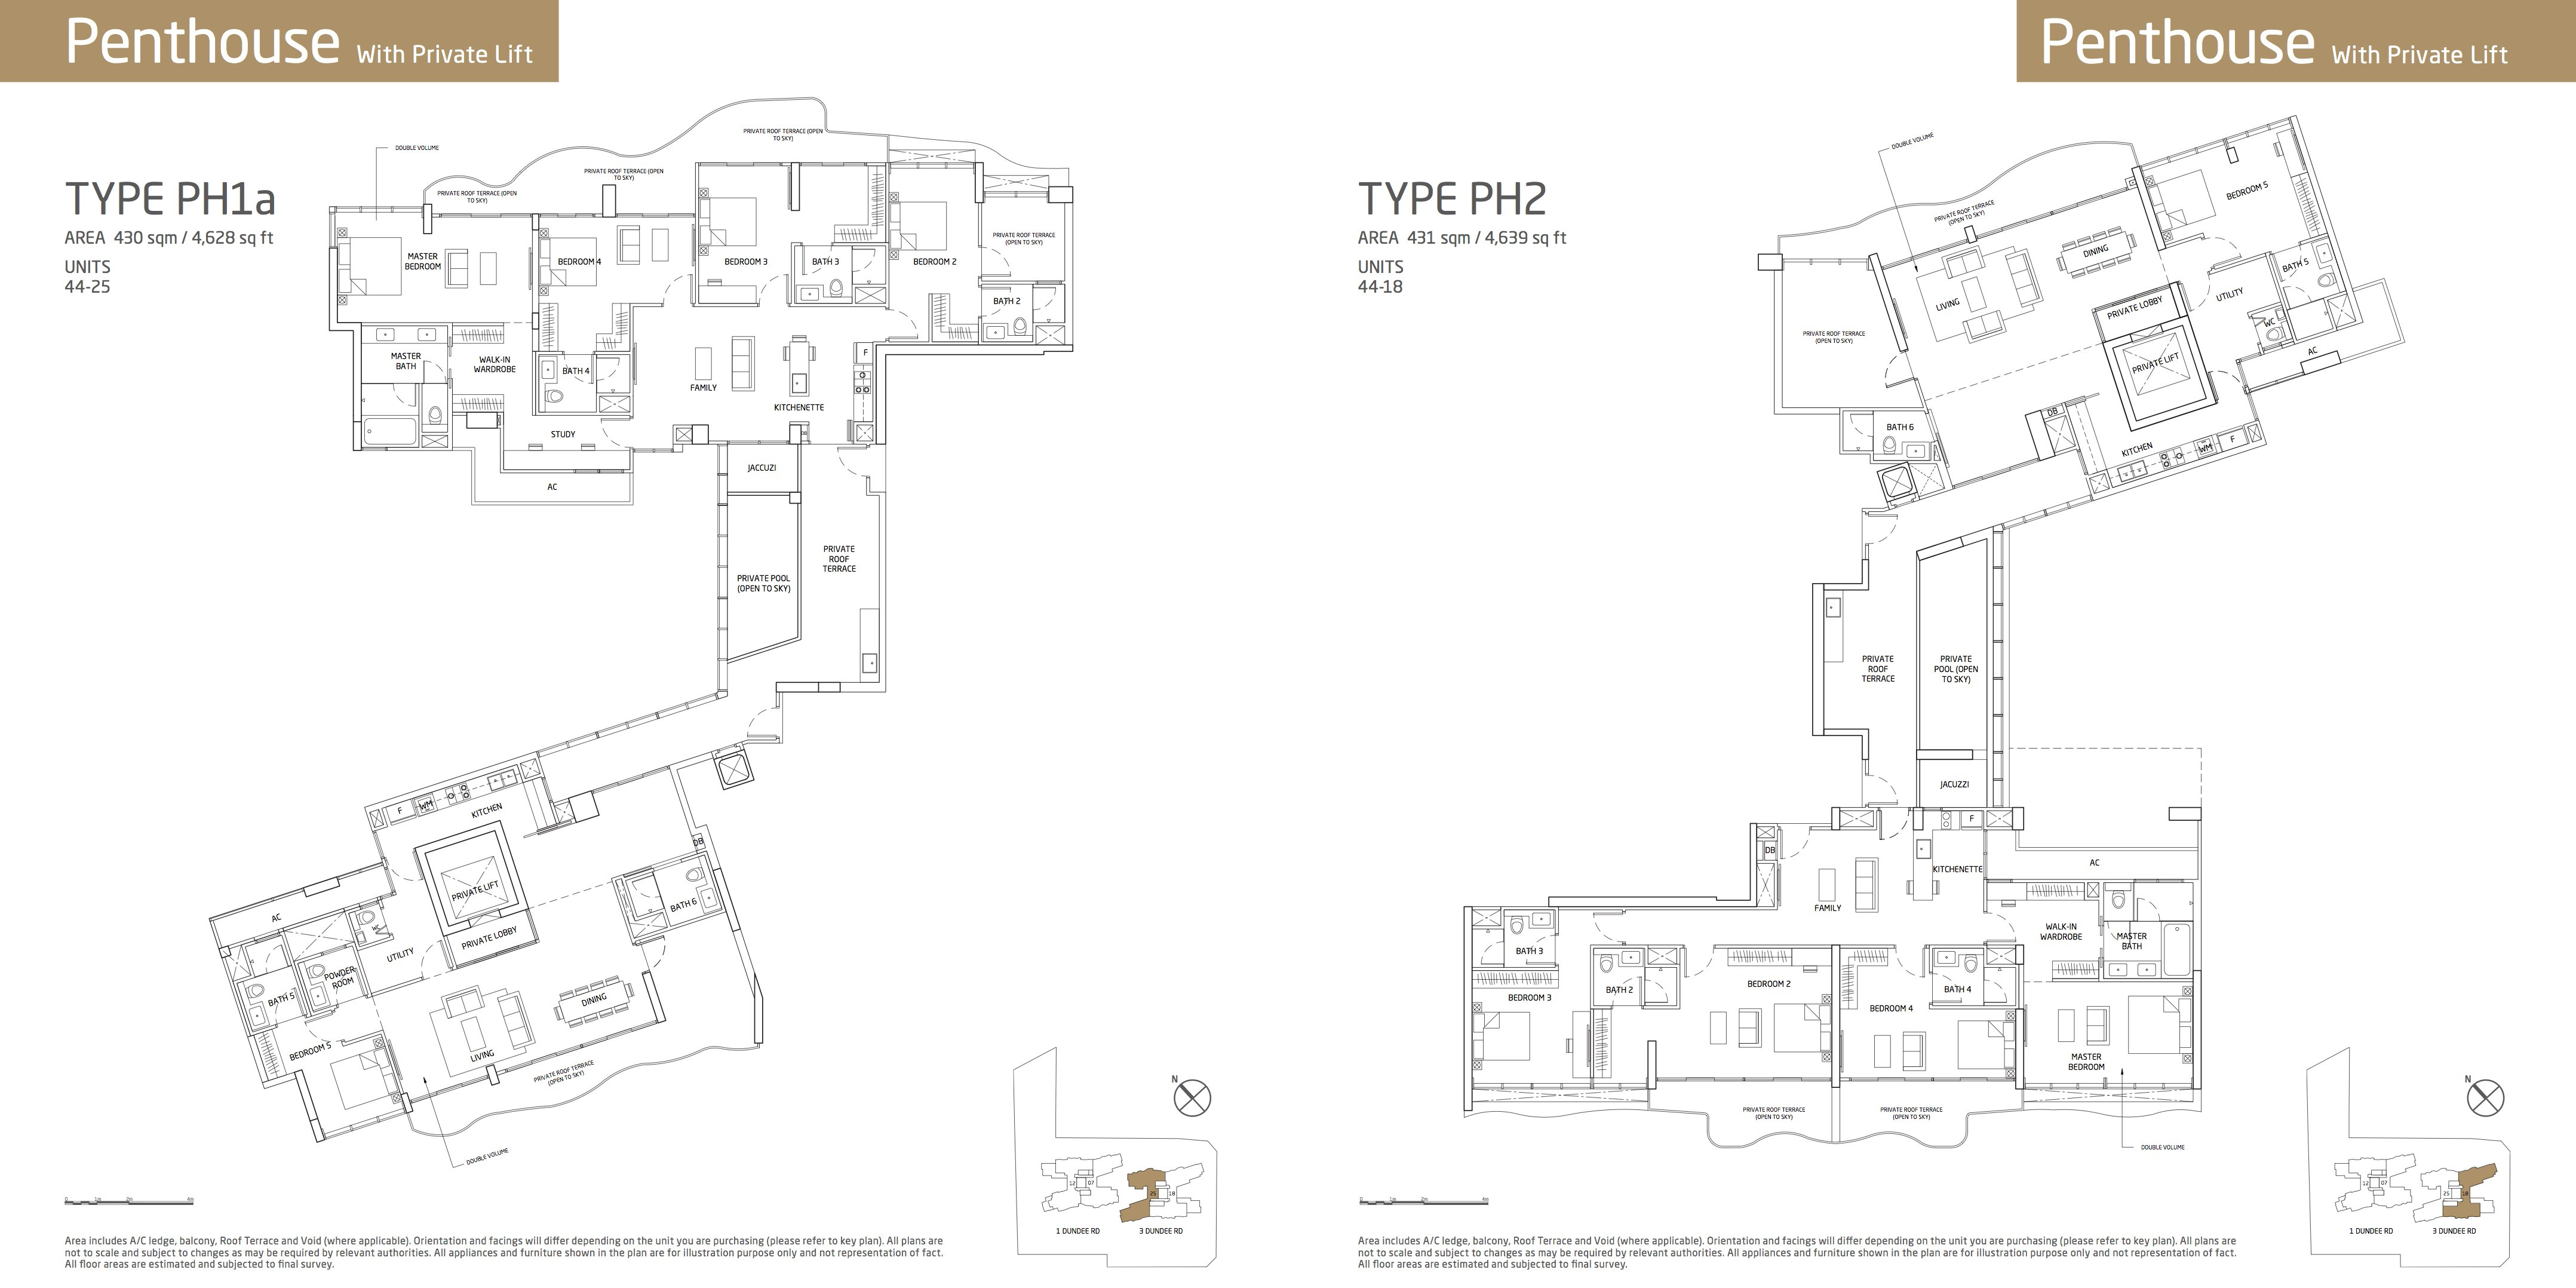 Queens Peak skye collections penthouse PH1a and PH2